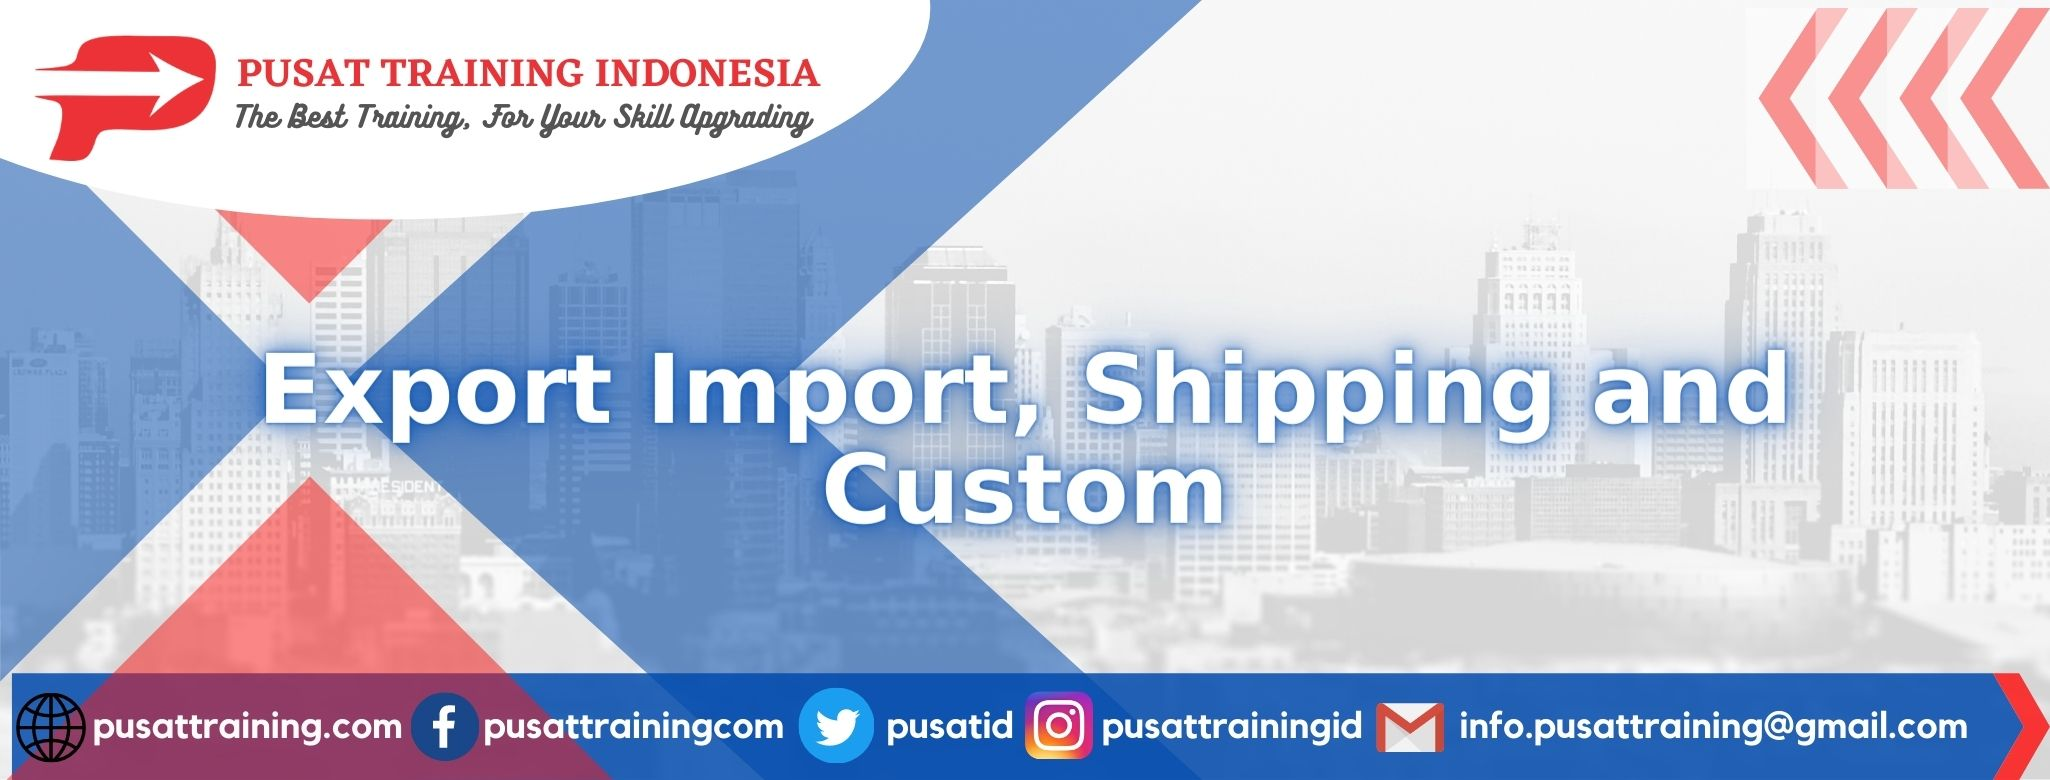 Export-Import-Shipping-and-Custom